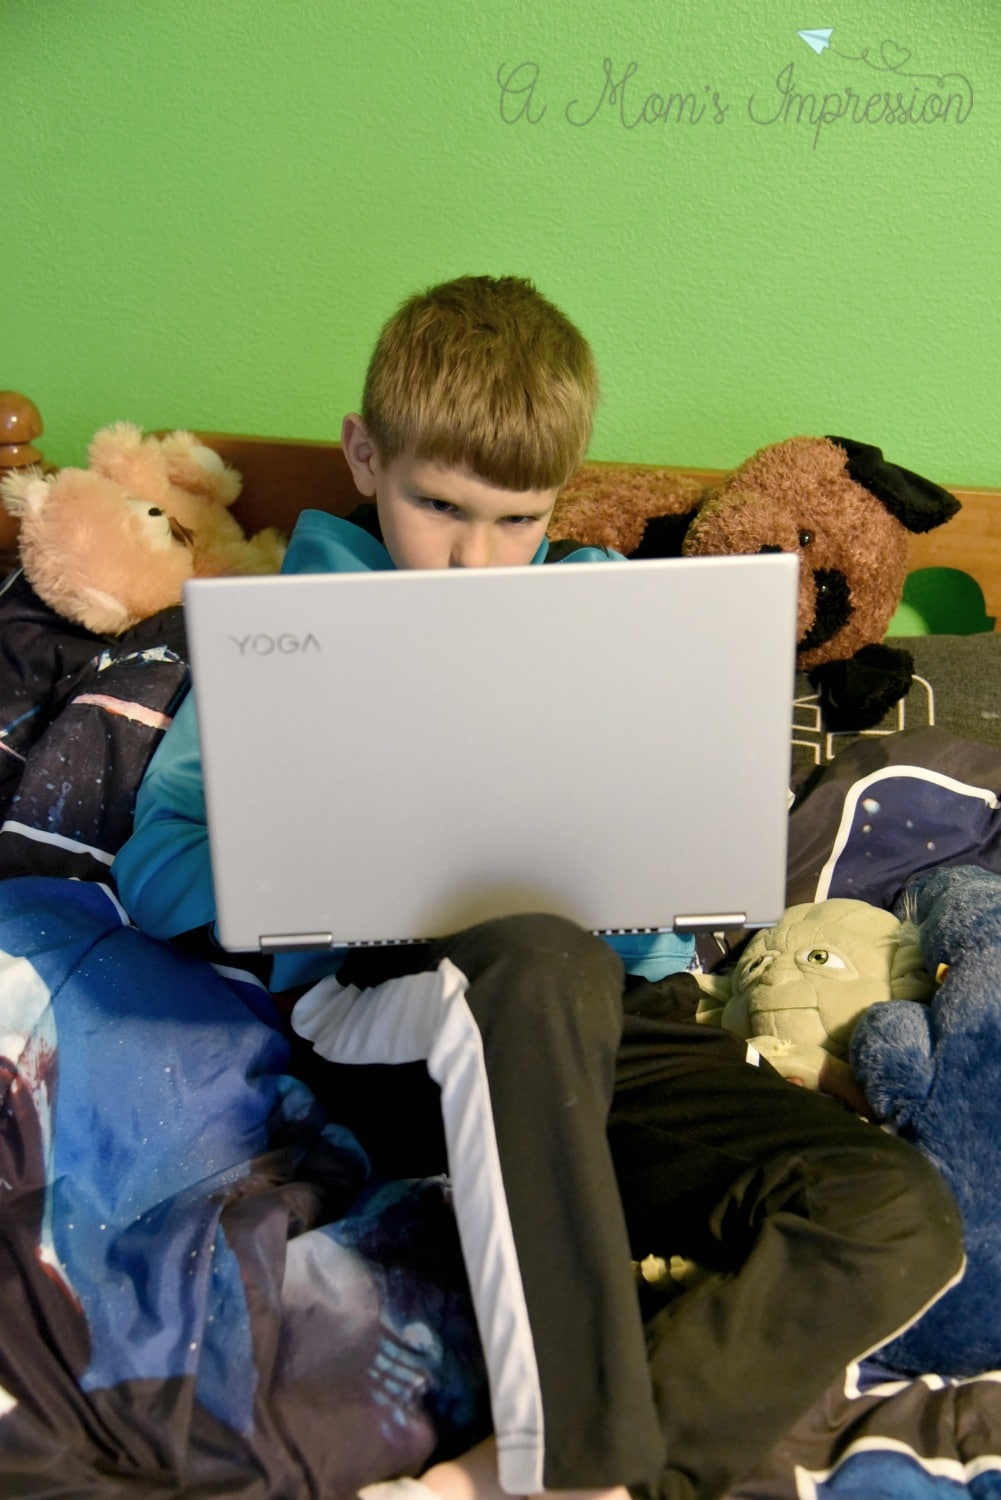 Child play games on Laptop